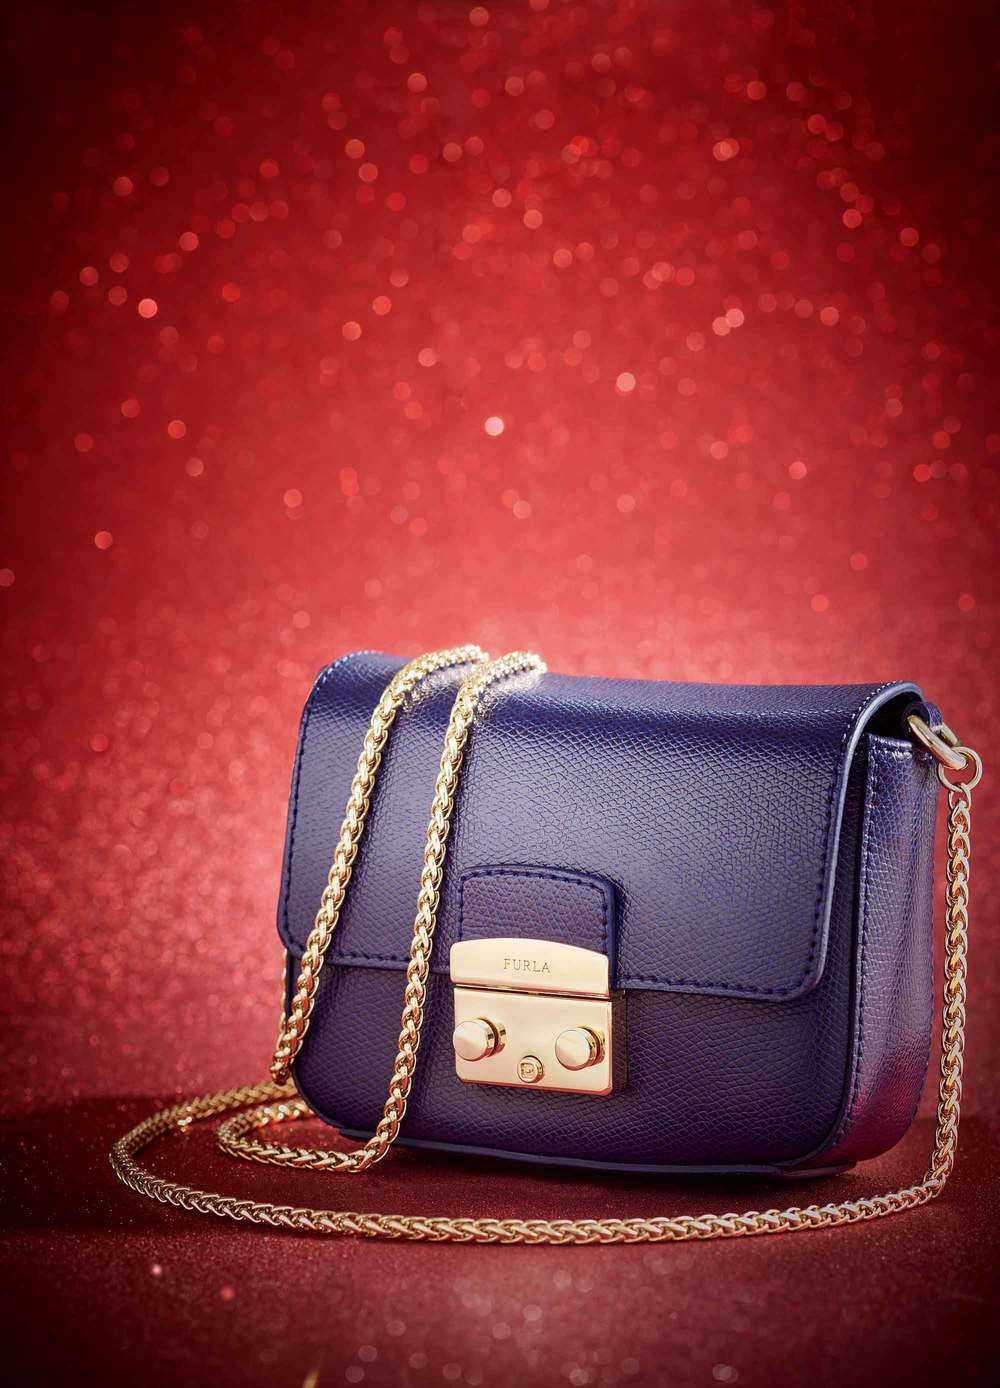 Tamara-Elphick-Furla-Christmas-British-Airways.jpg